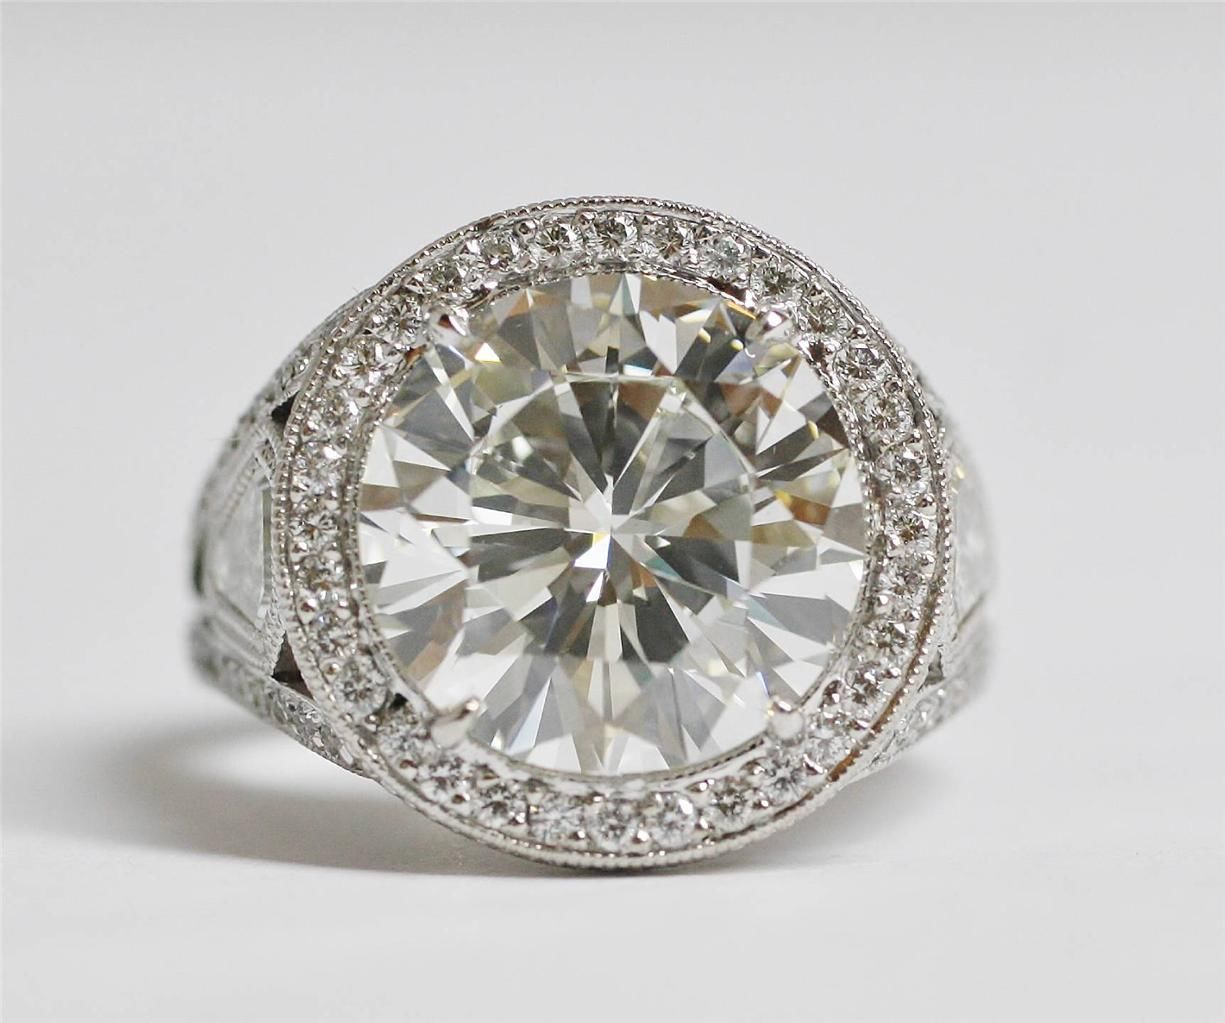 selling vs auctioning diamond jewelry - Selling Wedding Ring